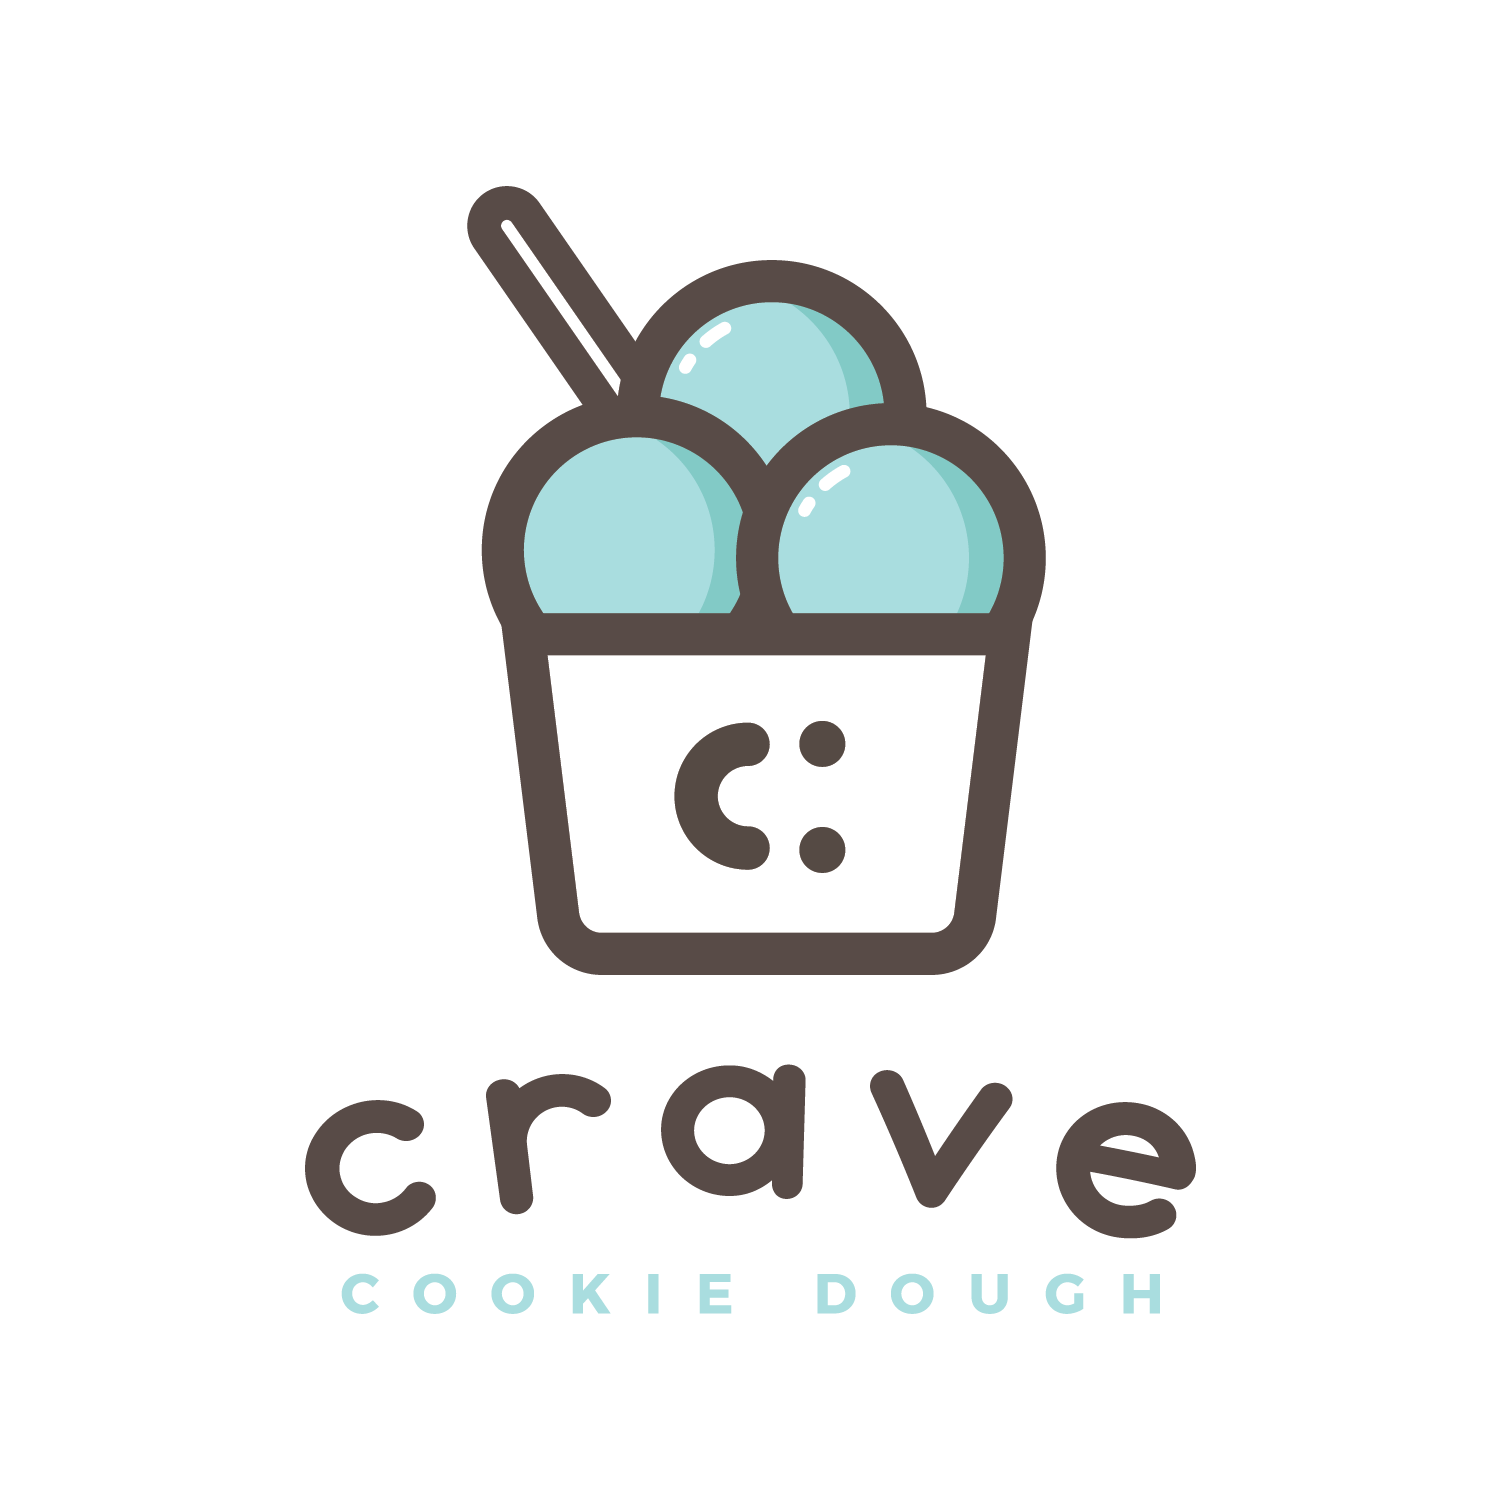 Crave Cookie Dough